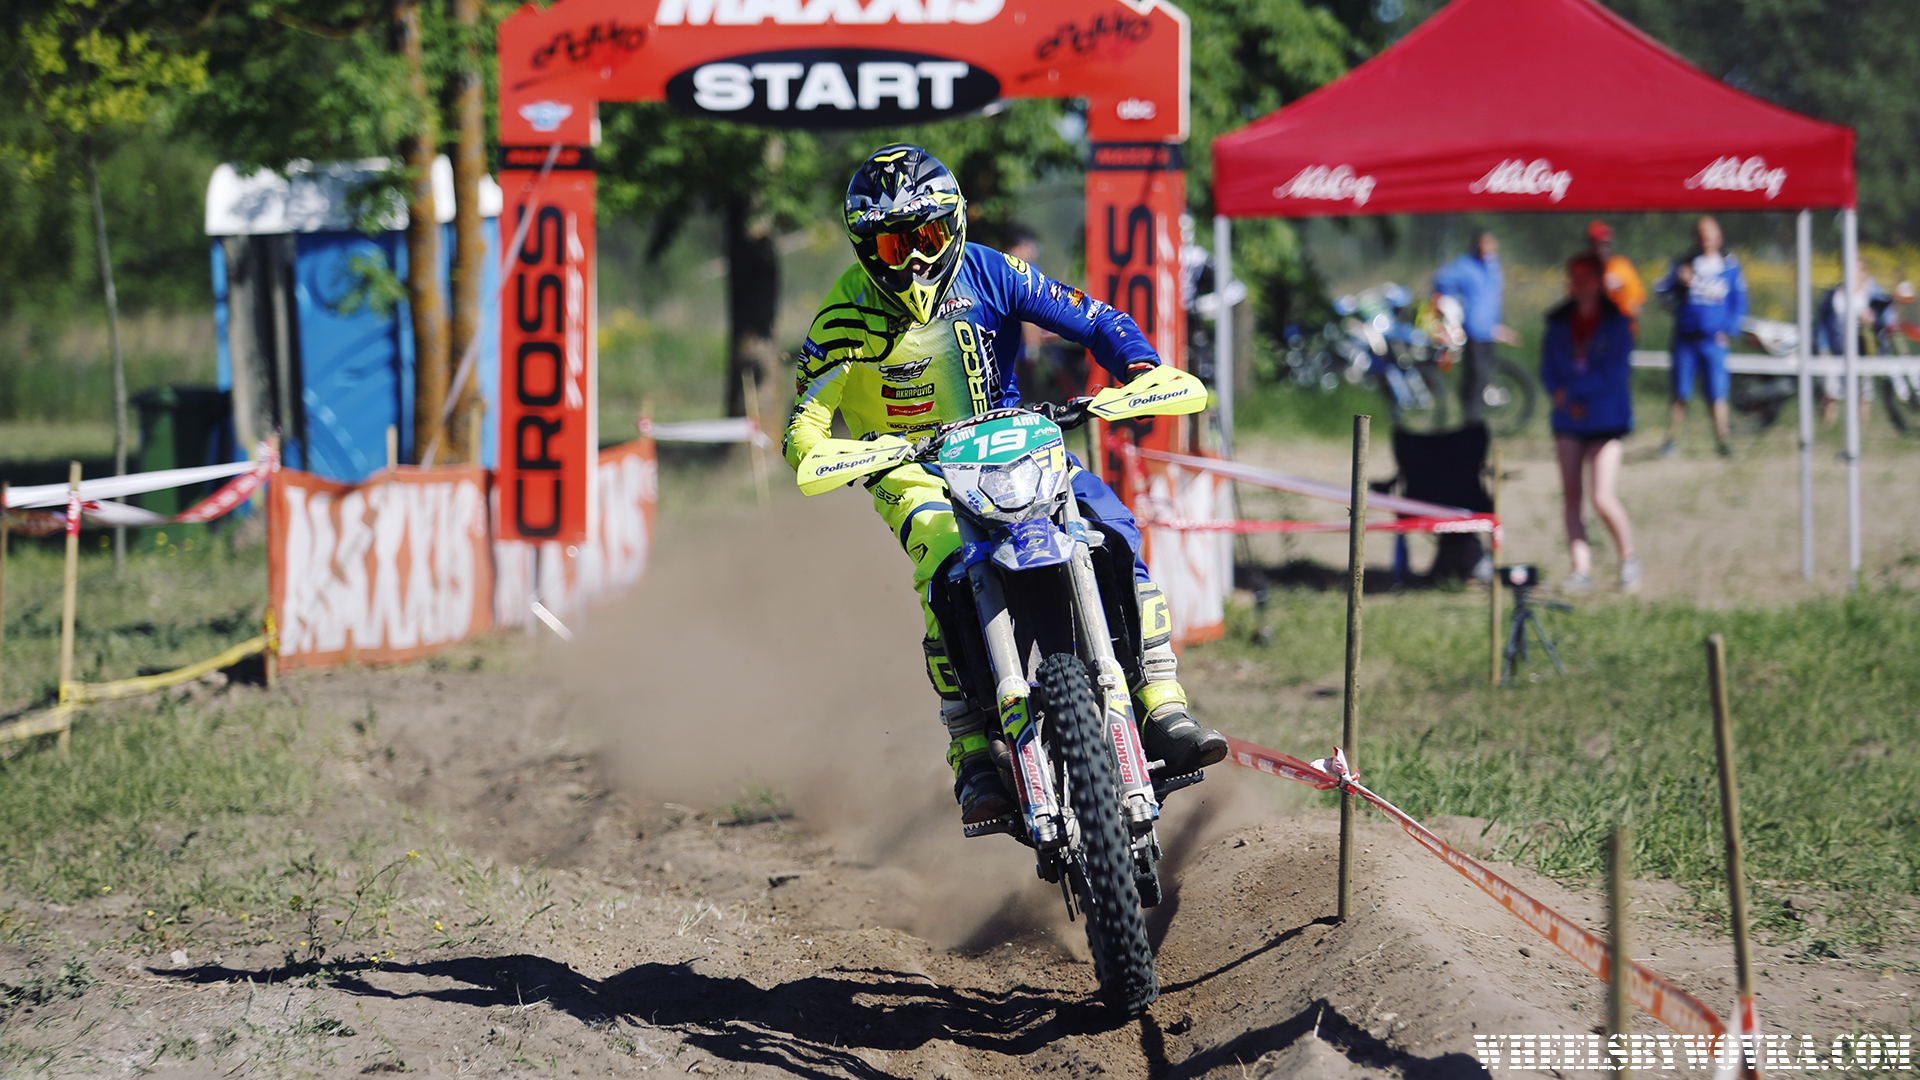 enduro-tallinn-gp-estonia-by-wheelsbywovka-7